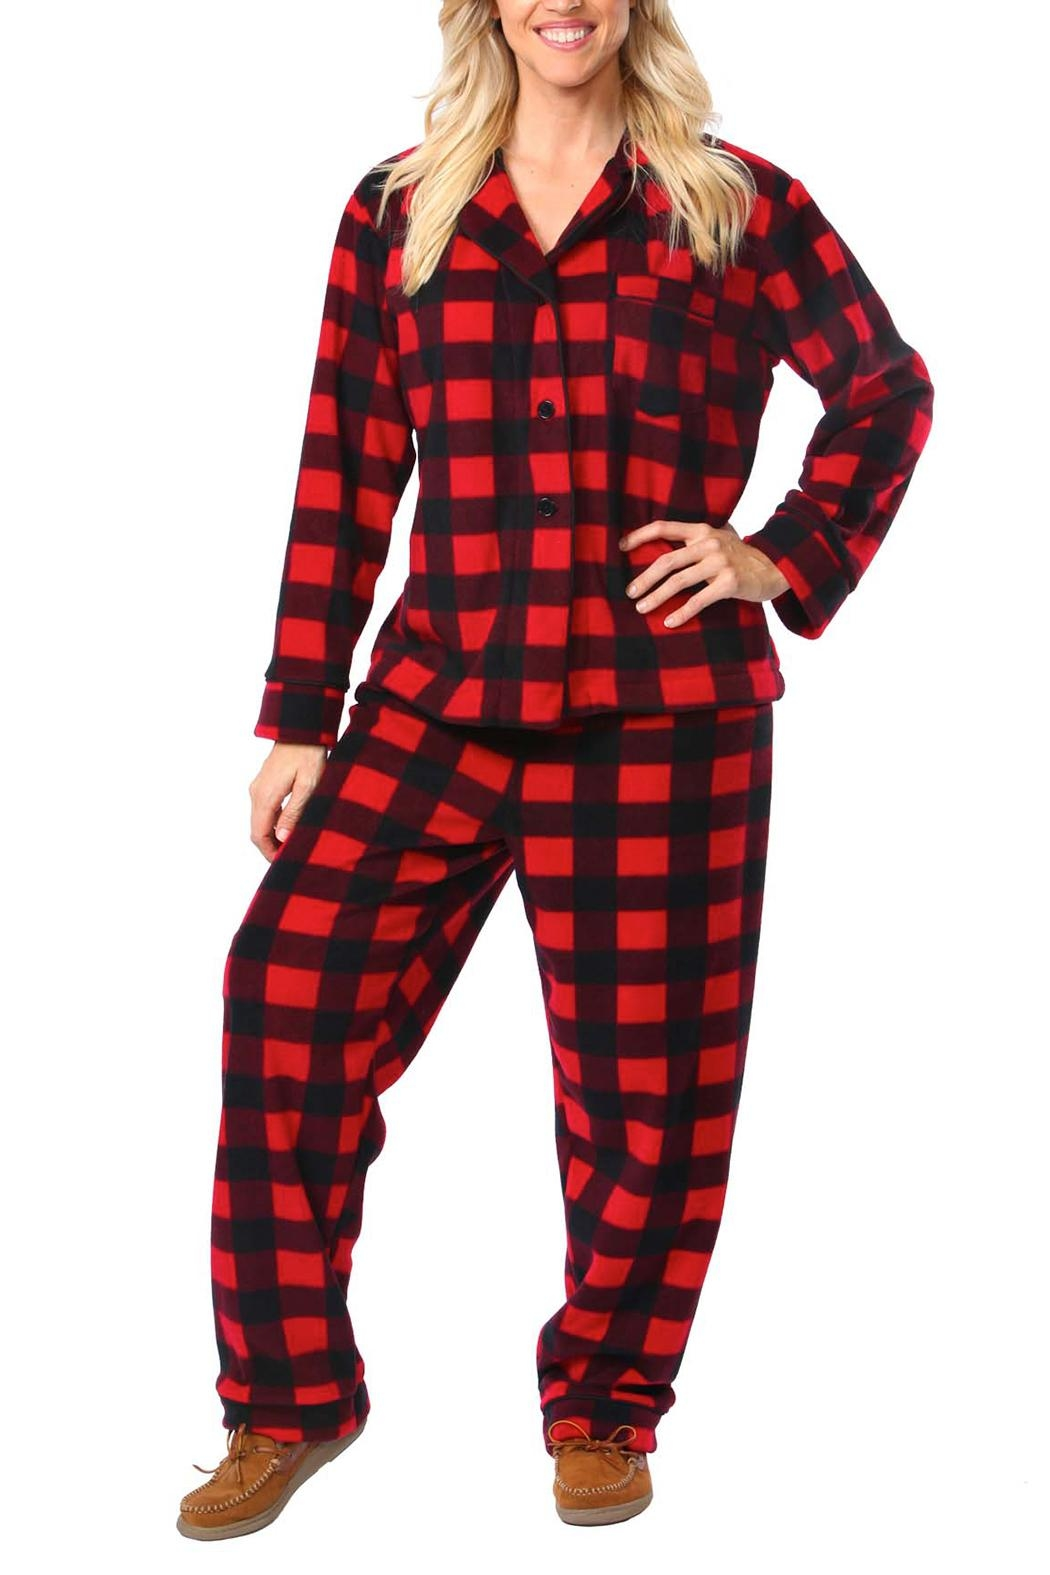 Snug As a Bug Canada Plaid Pajama Set